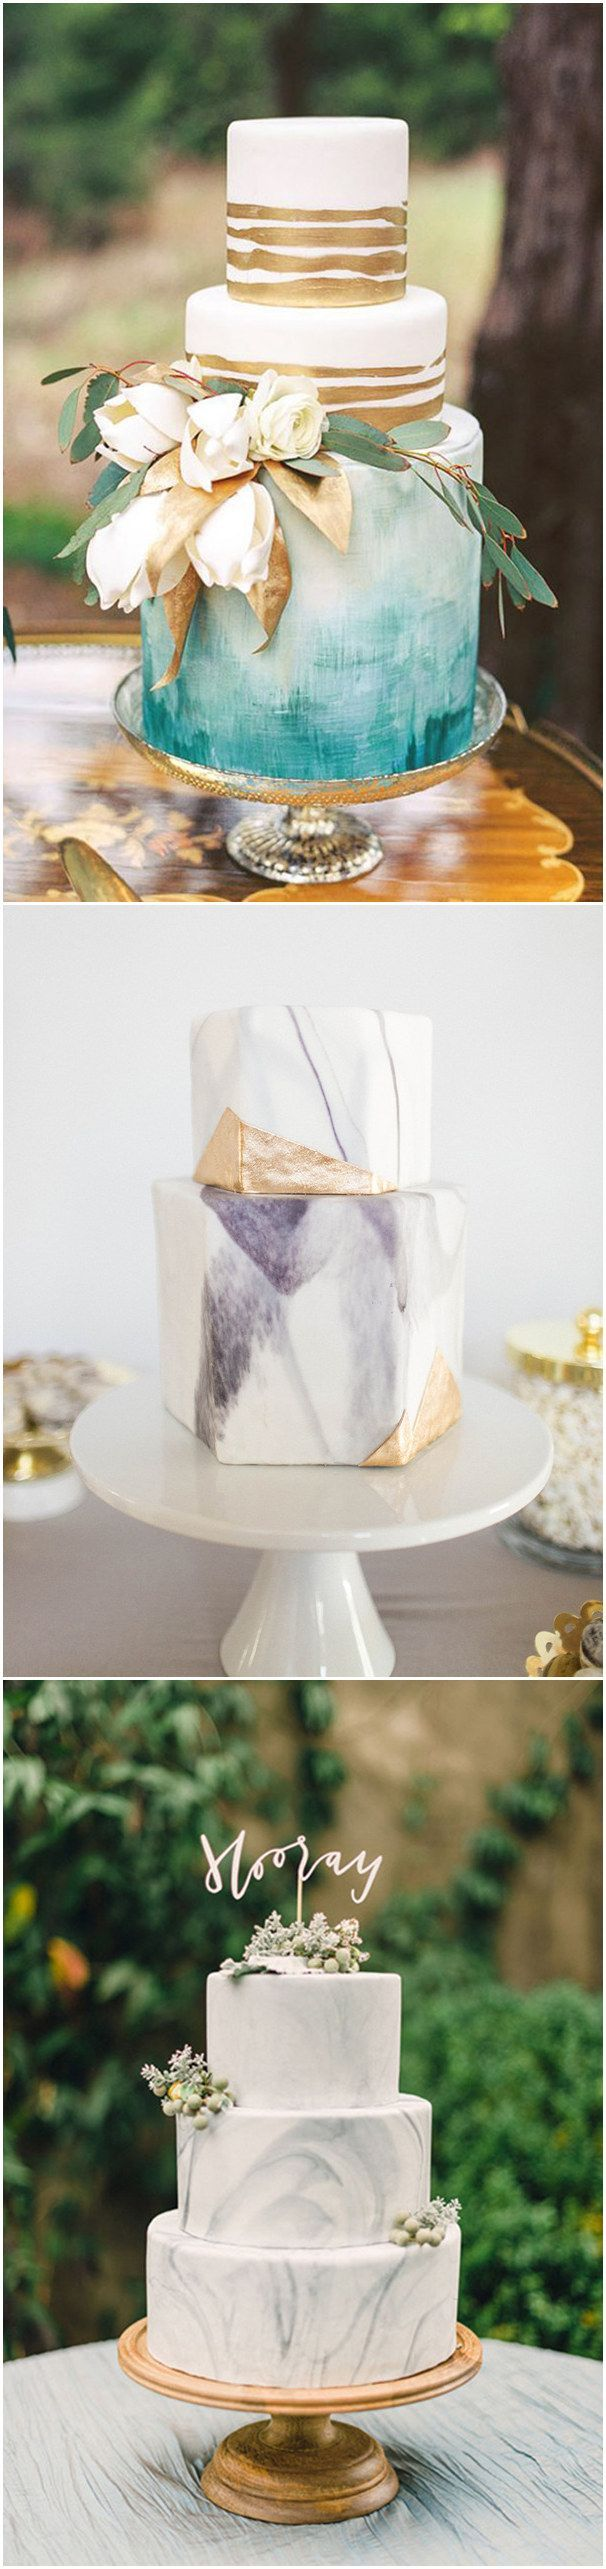 LOVE LOVE LOVE!!! Especially the top aqua/teal white and gold cake. modern marble wedding cakes for 2017